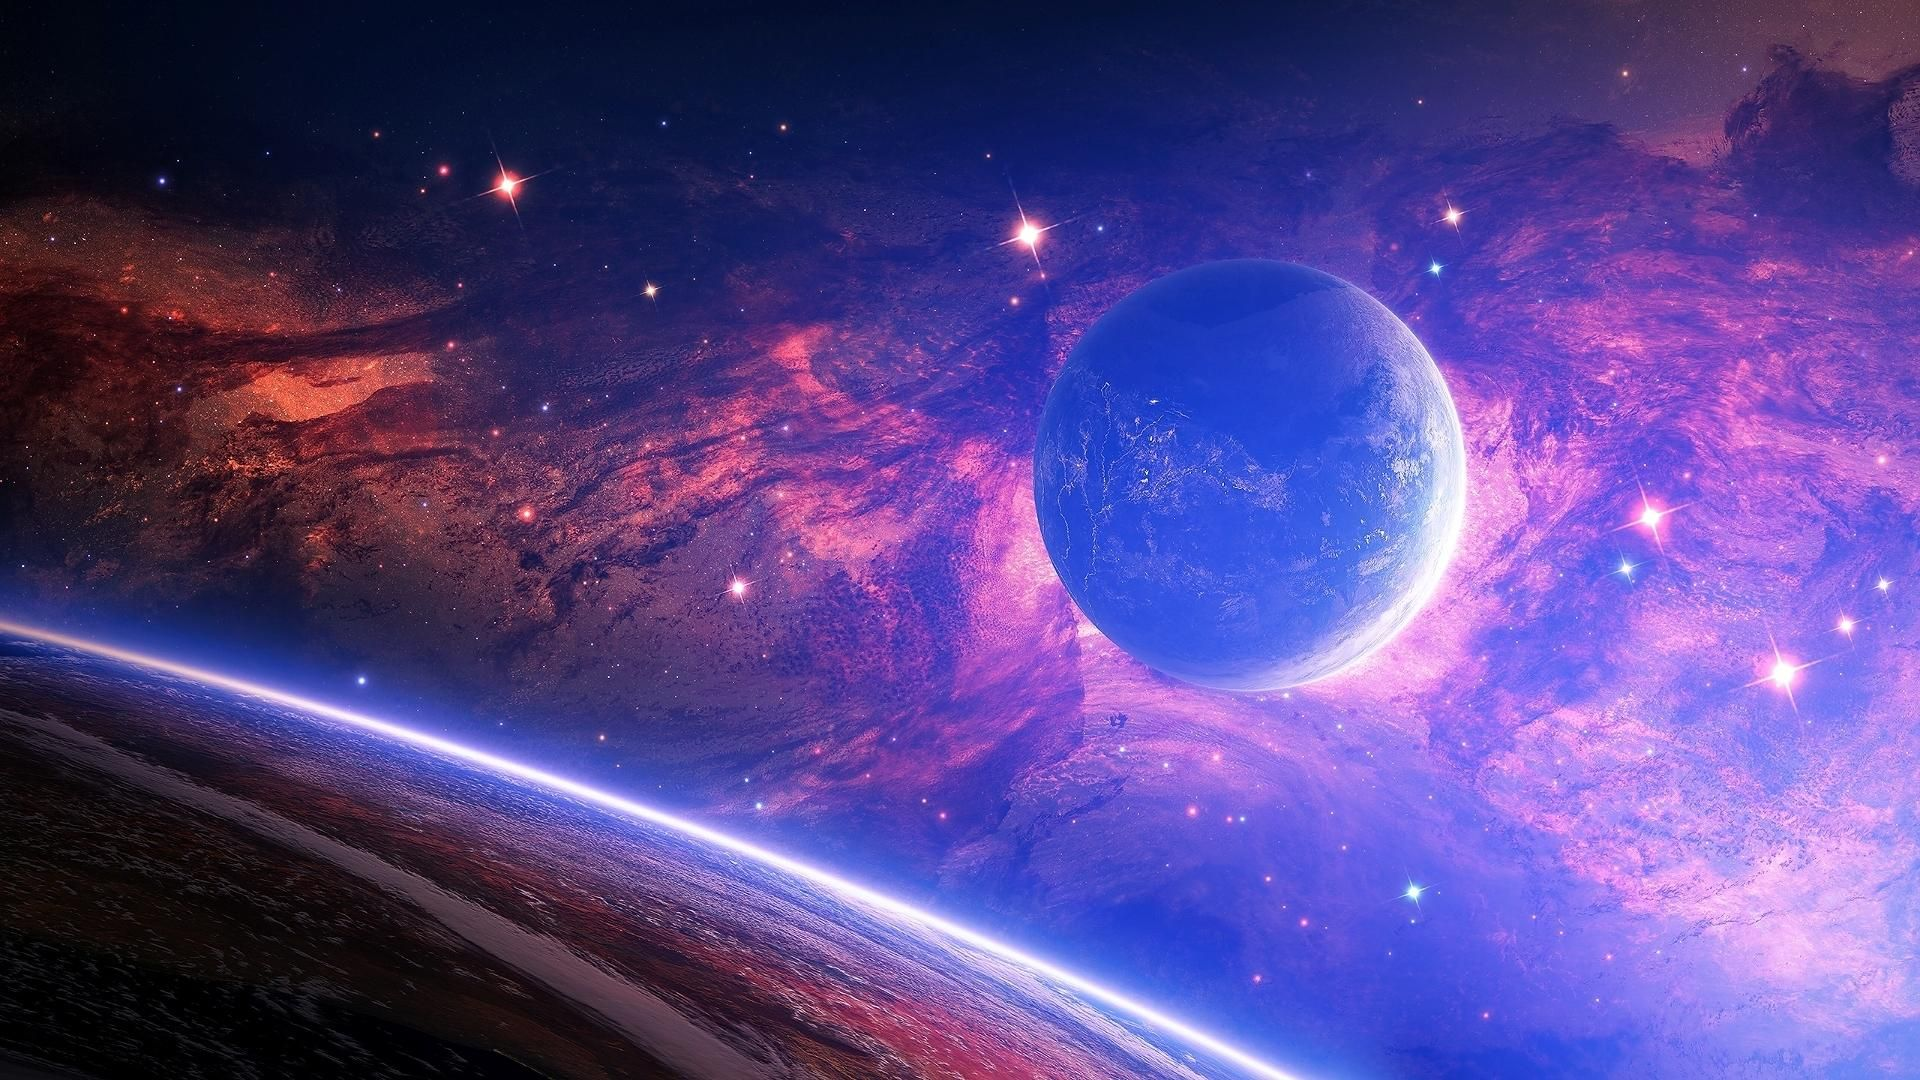 Beautiful Space Wallpaper [1920x1080] Reddit HD